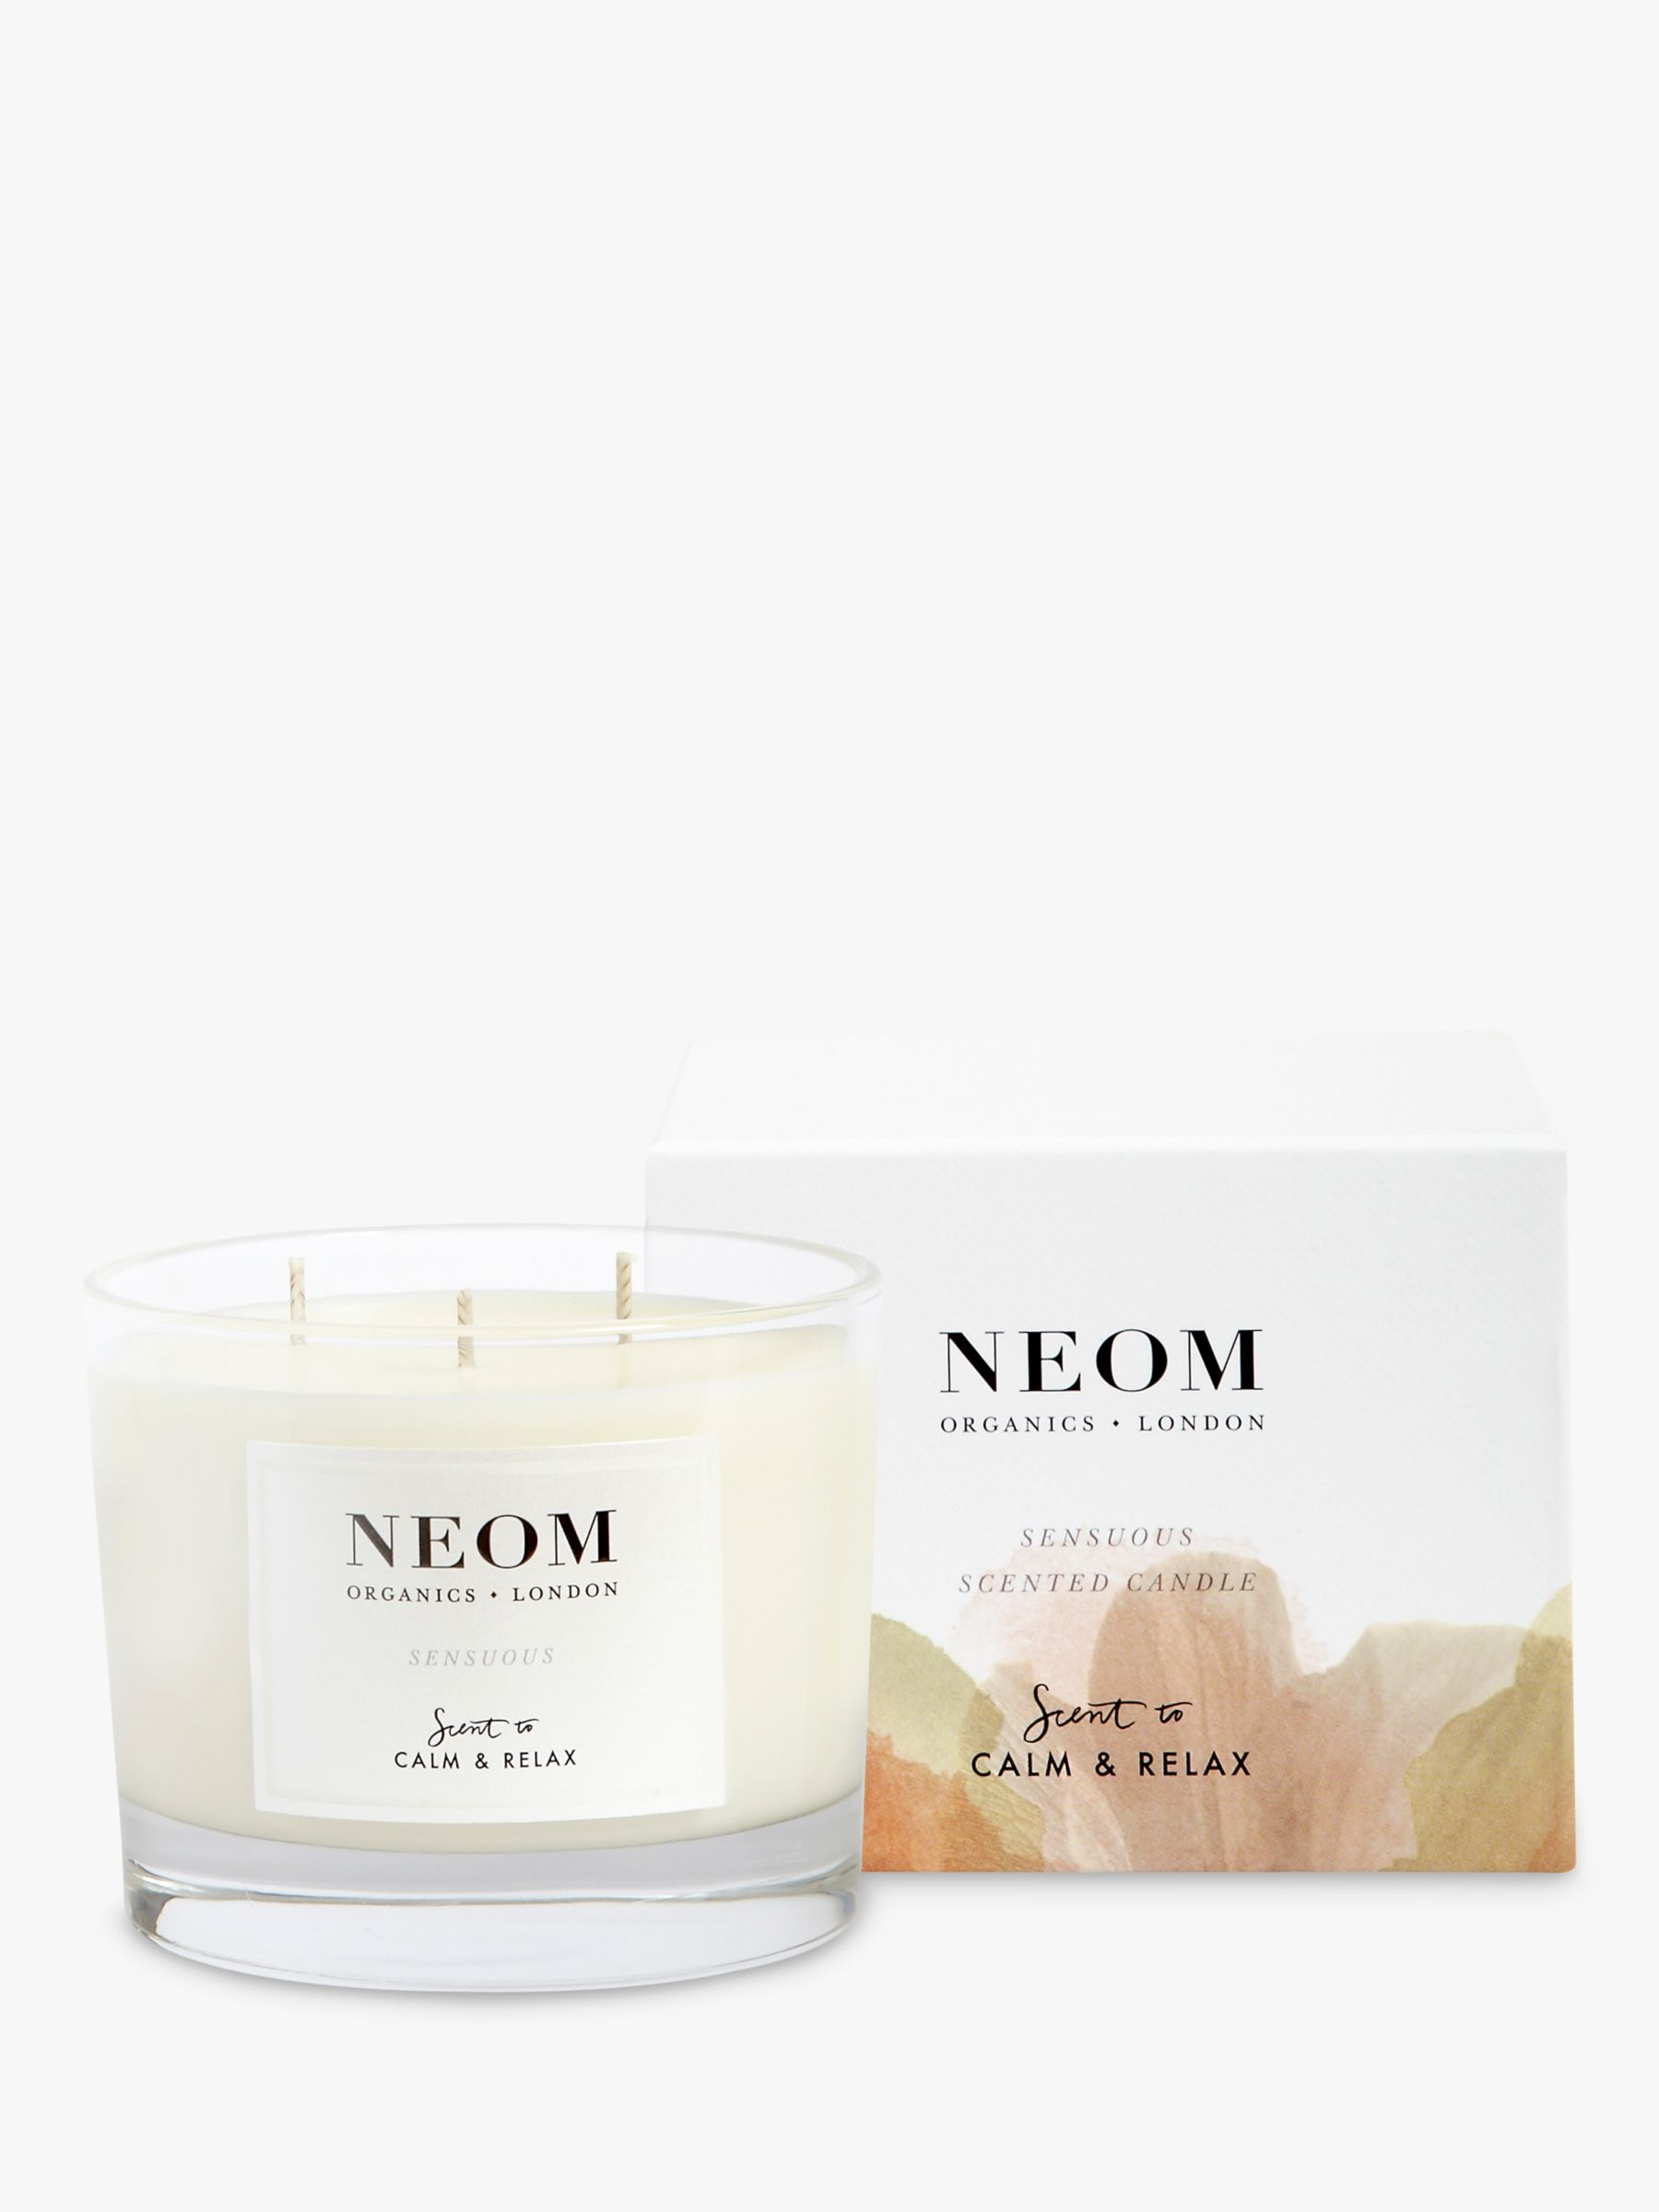 Neom Neom Sensuous 3 Wick Candle, 420g